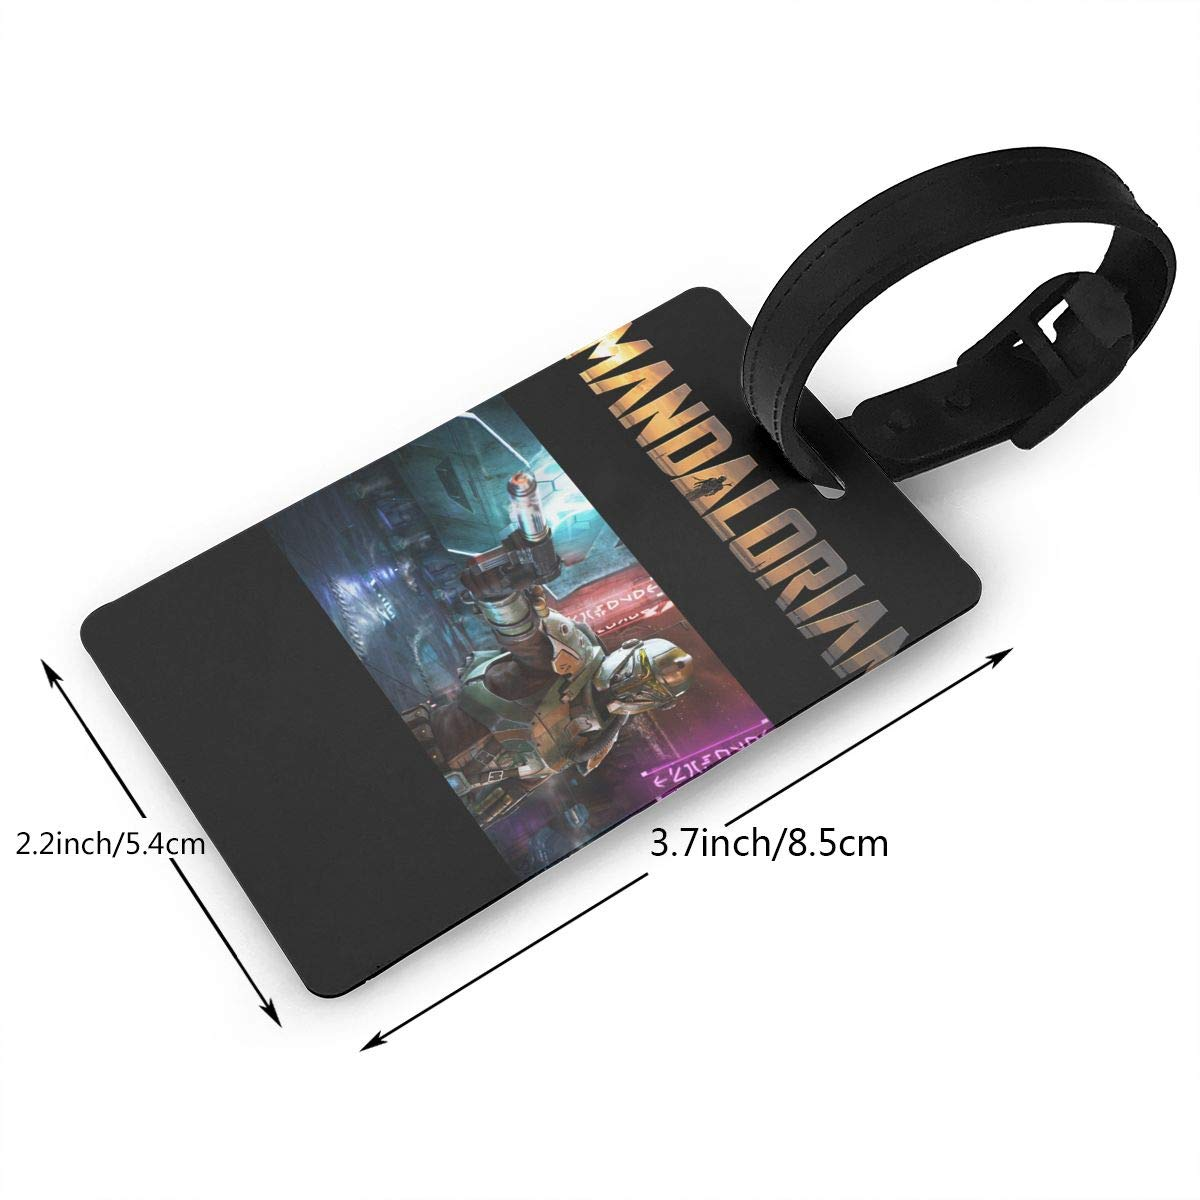 Hushuxiapp Large Mandalorian Complete Printed Design PVC Luggage Tag Travel Suitcase ID Labels Accessories Leather Wristband